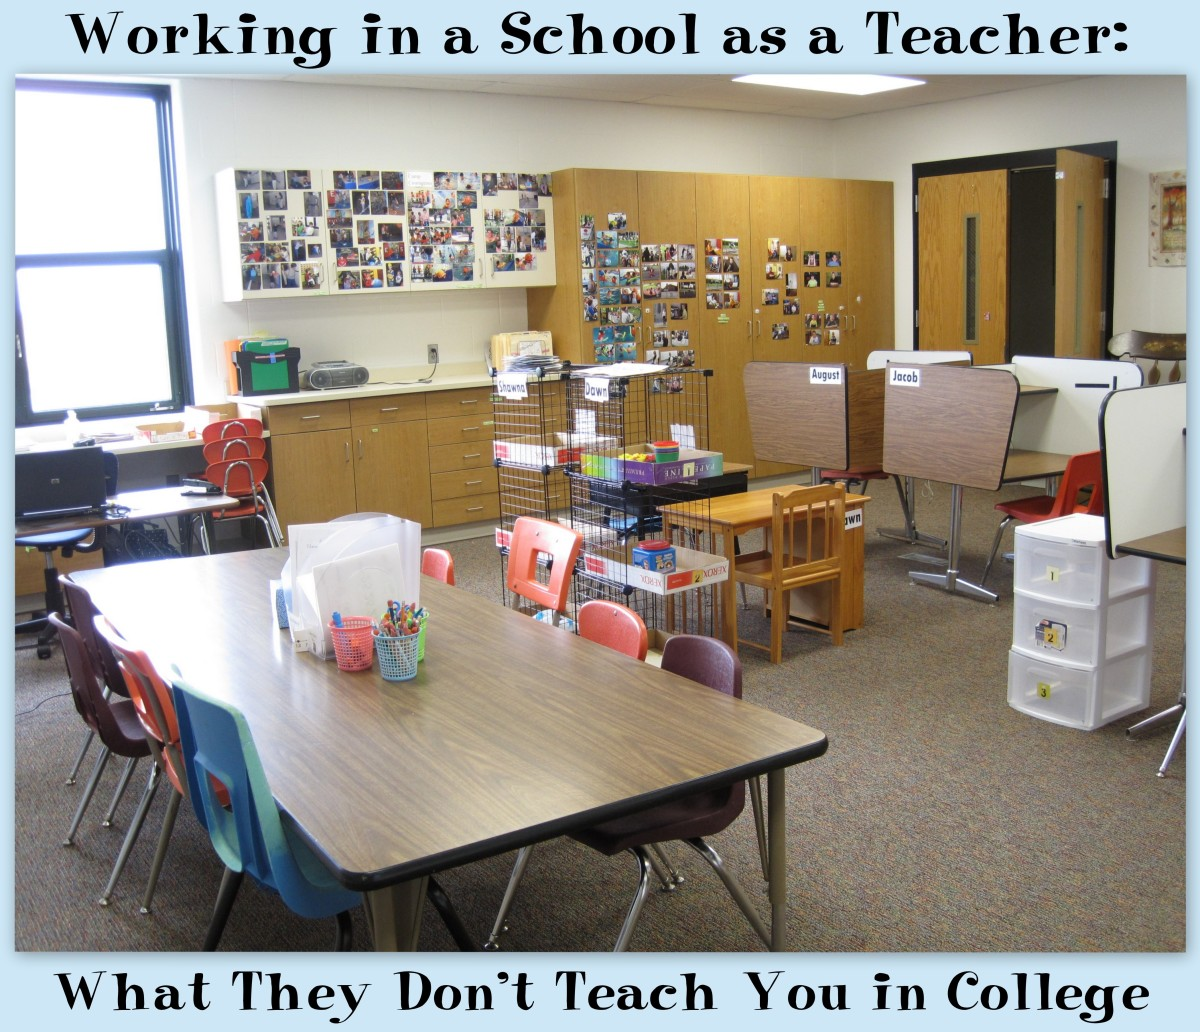 Working in a School as a Teacher: What They Don't Teach You in College